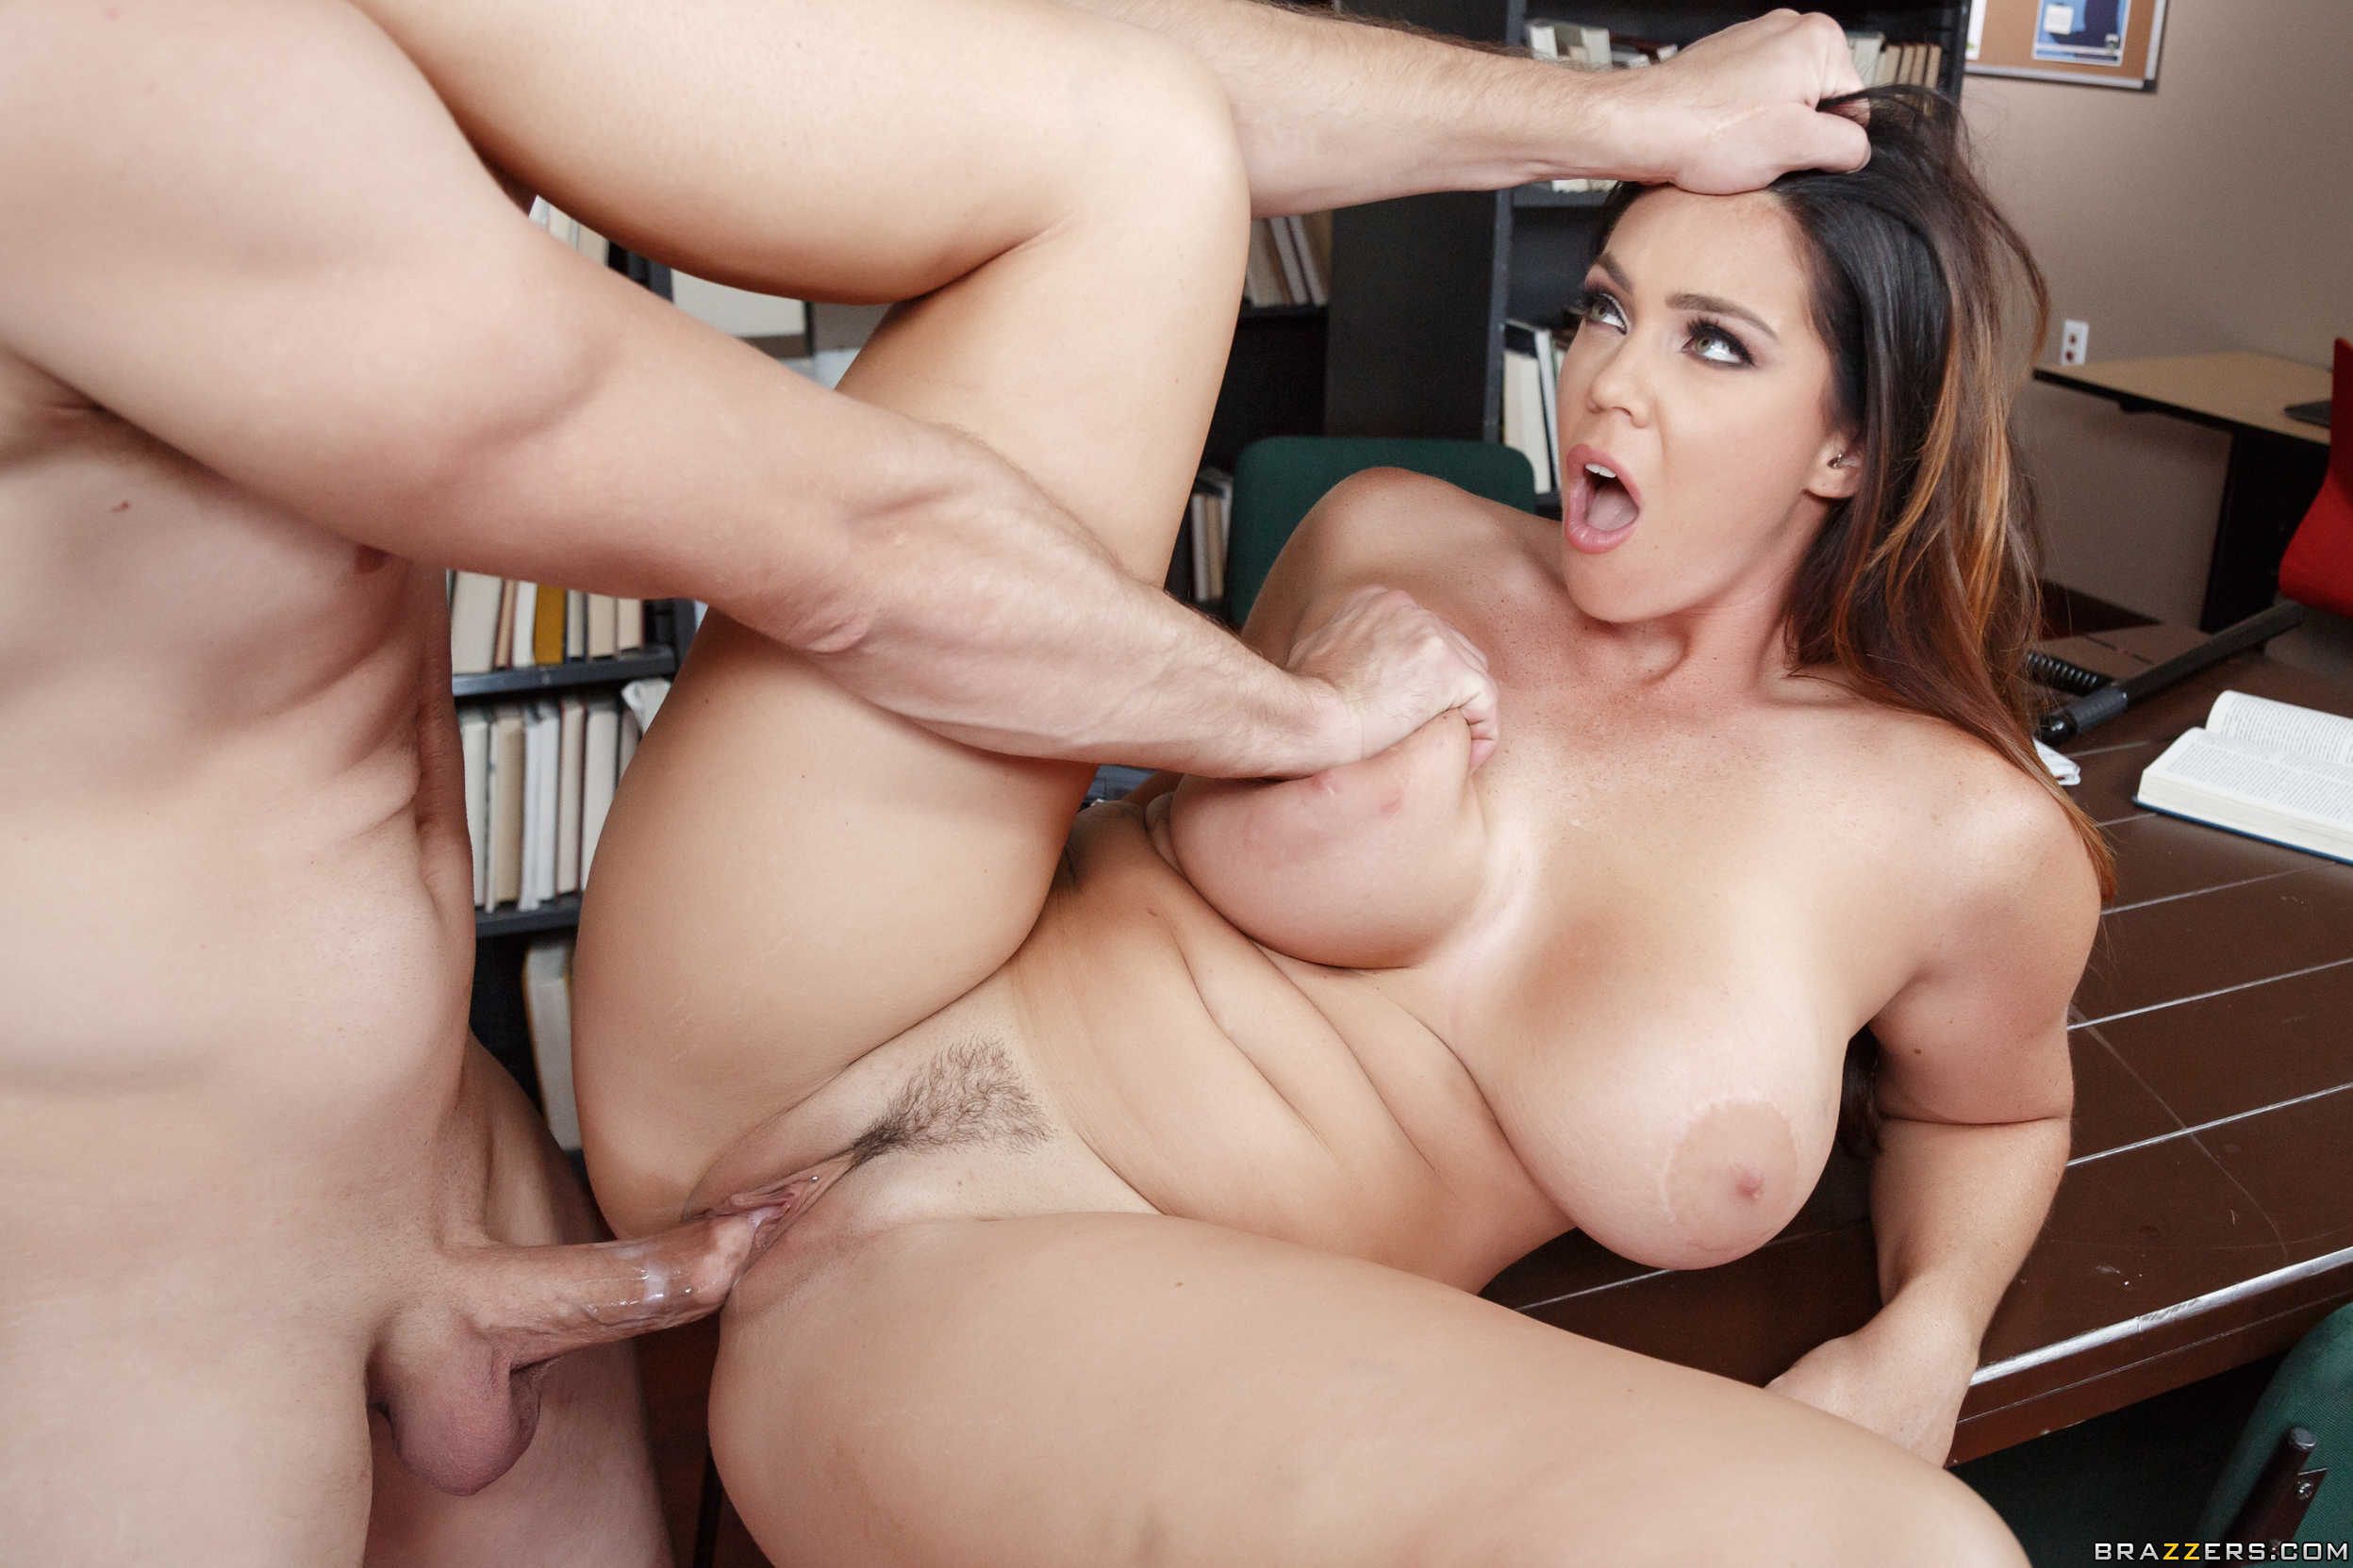 Alexis fawx wild fucking in the kitchen 5